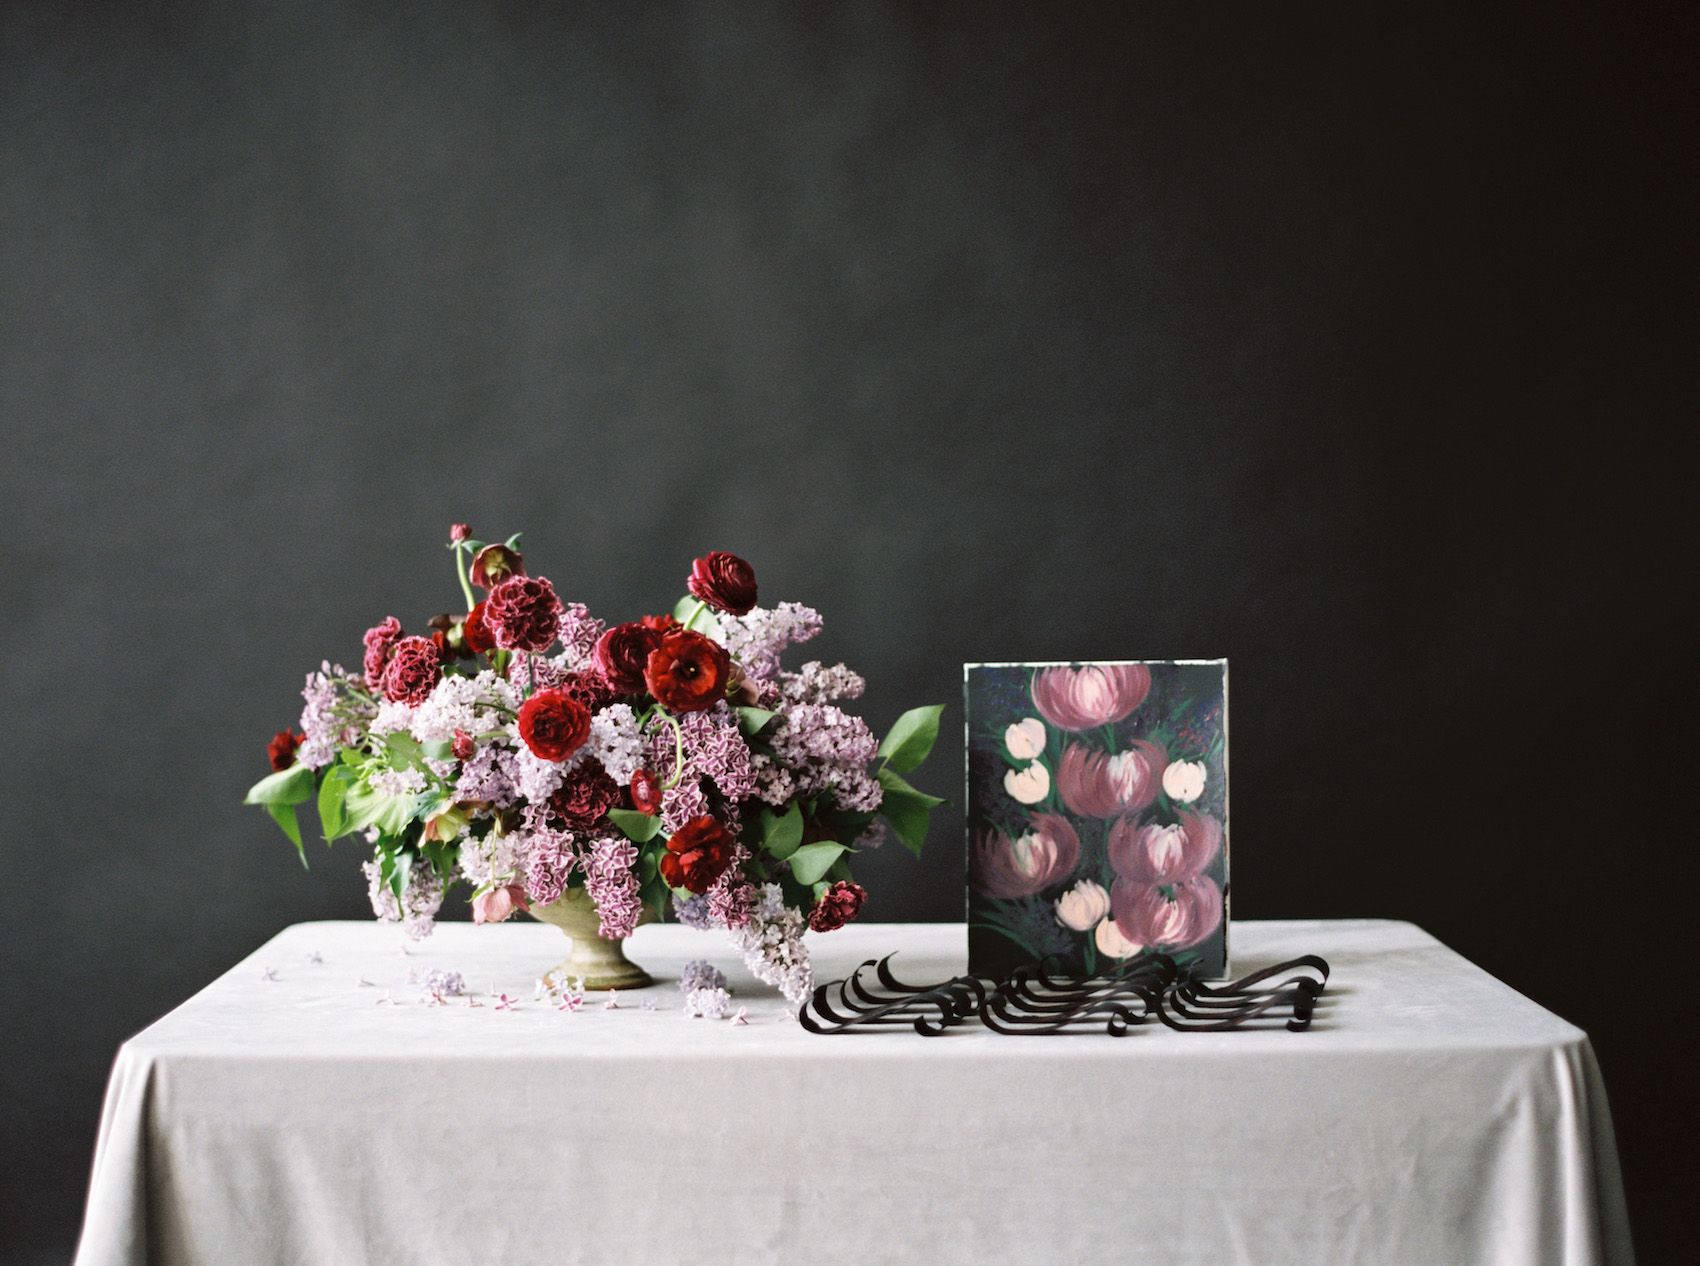 Escort card and place names table idea with flowers and art display